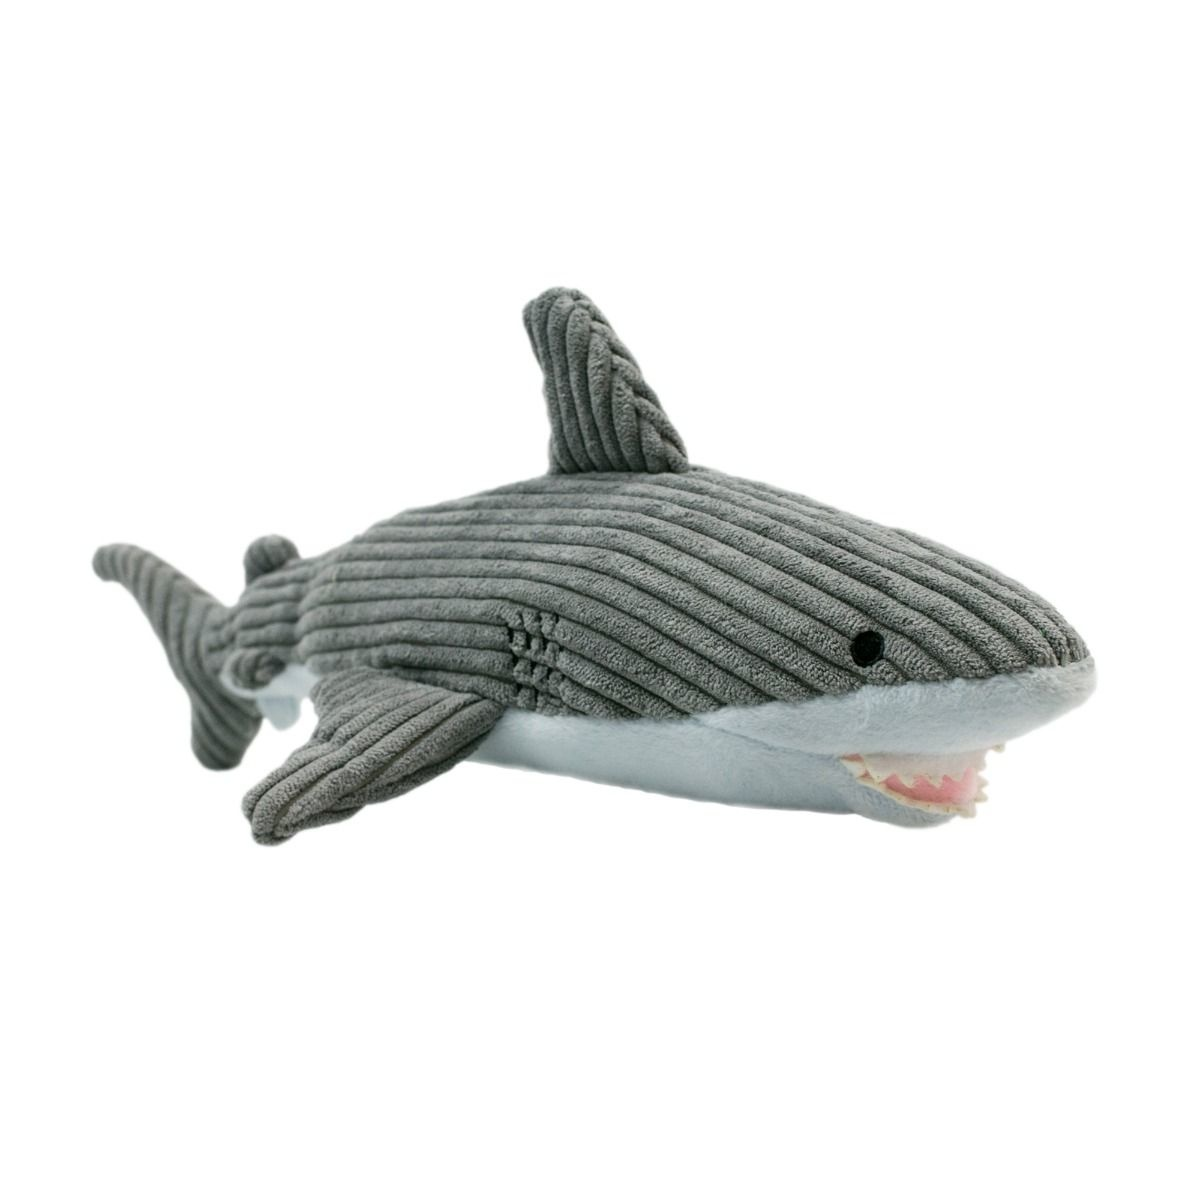 Tall Tails Tall Tails Plush Shark Toy